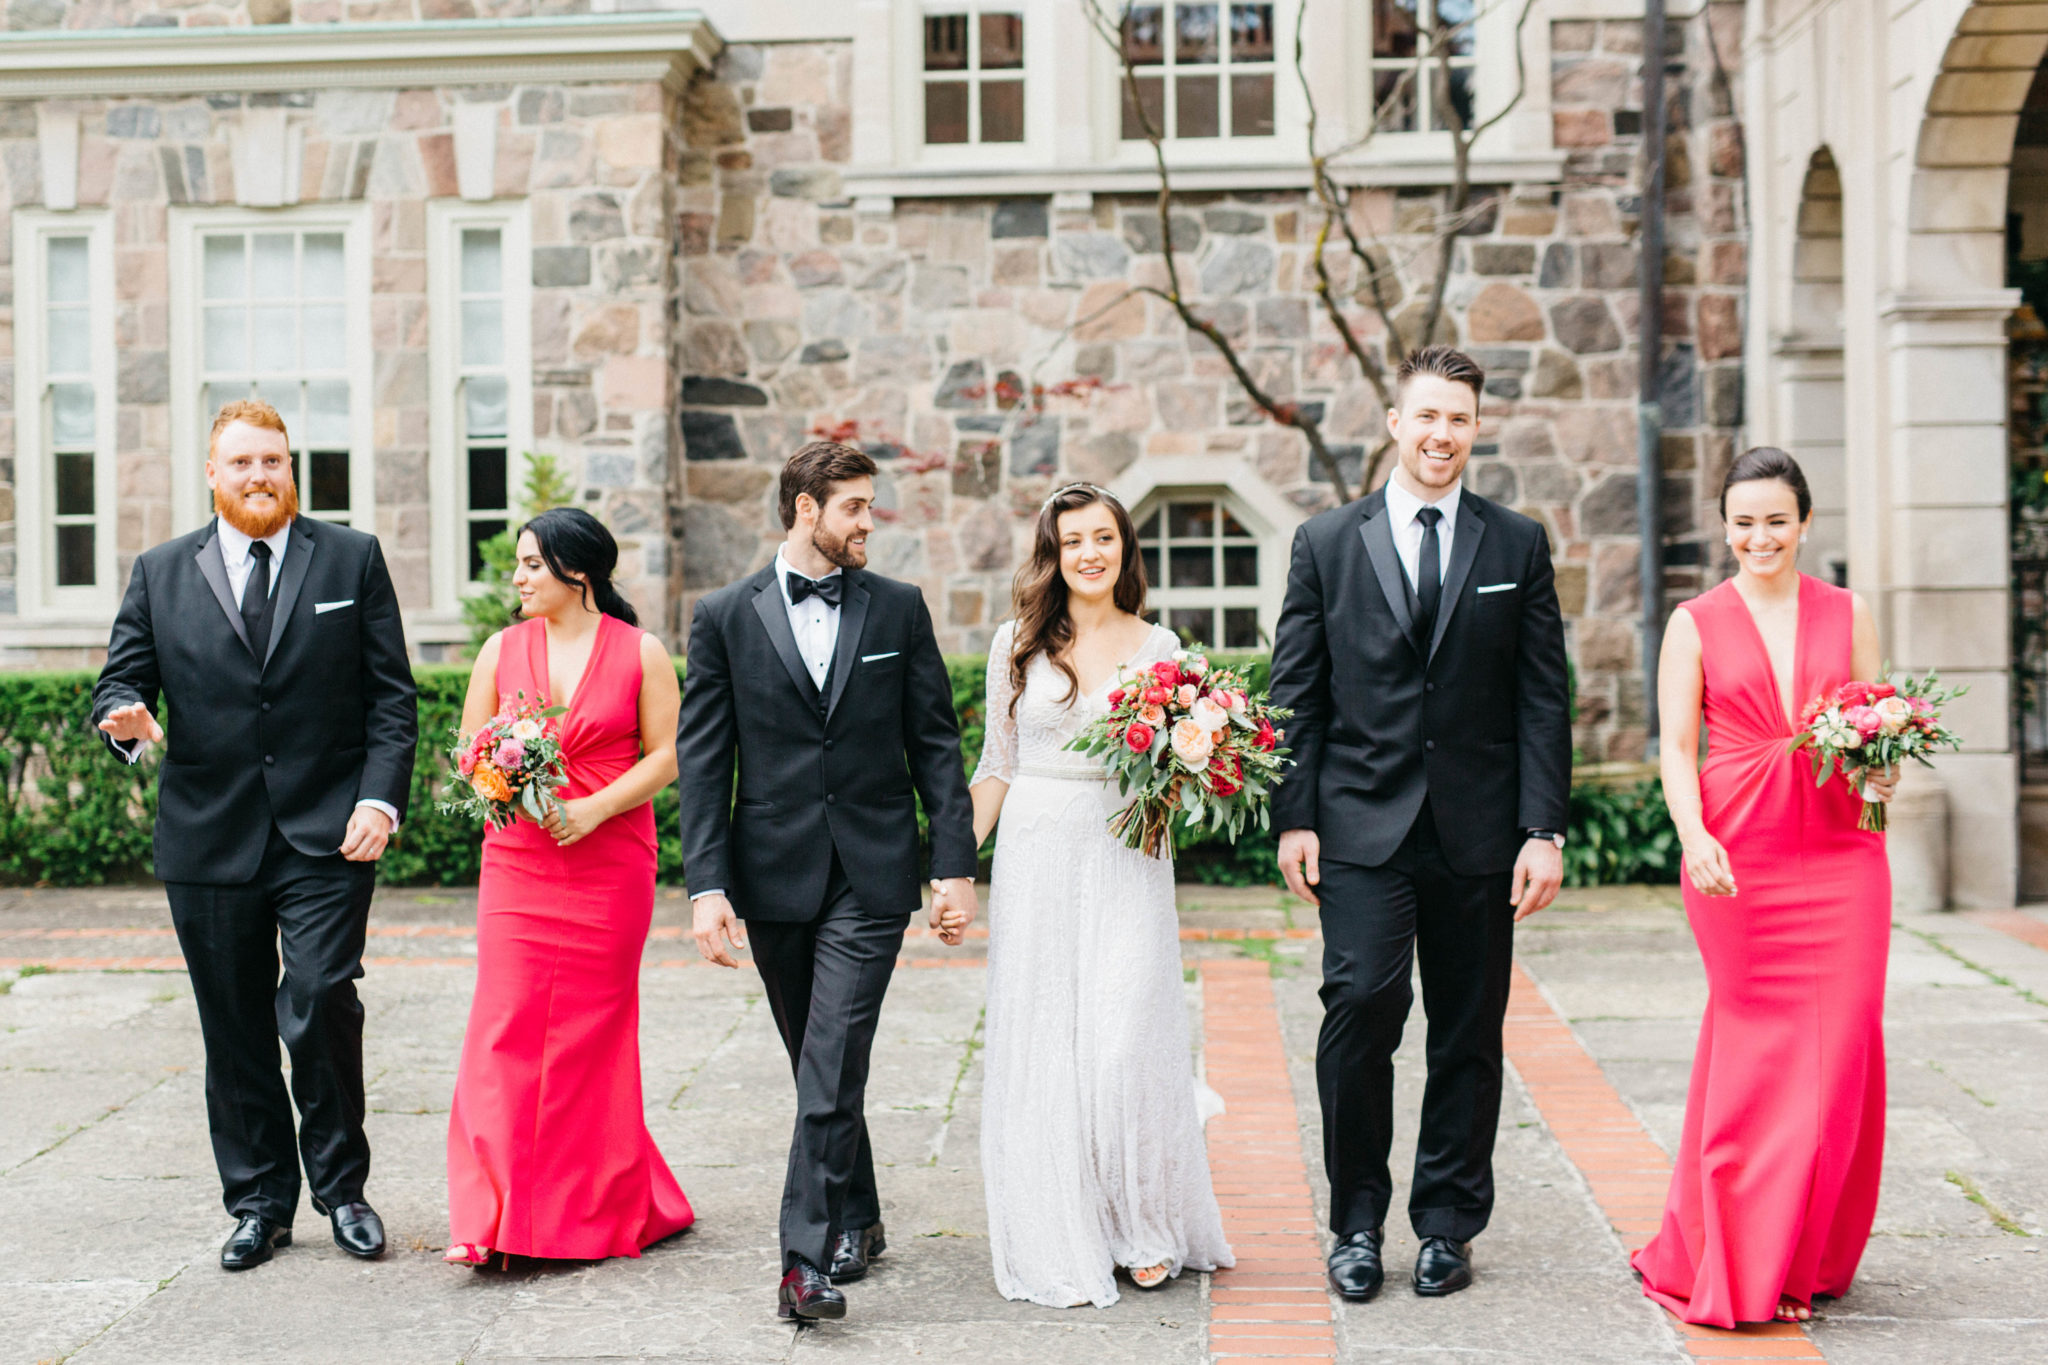 Bridal party shot at Gradyon Hall Manor